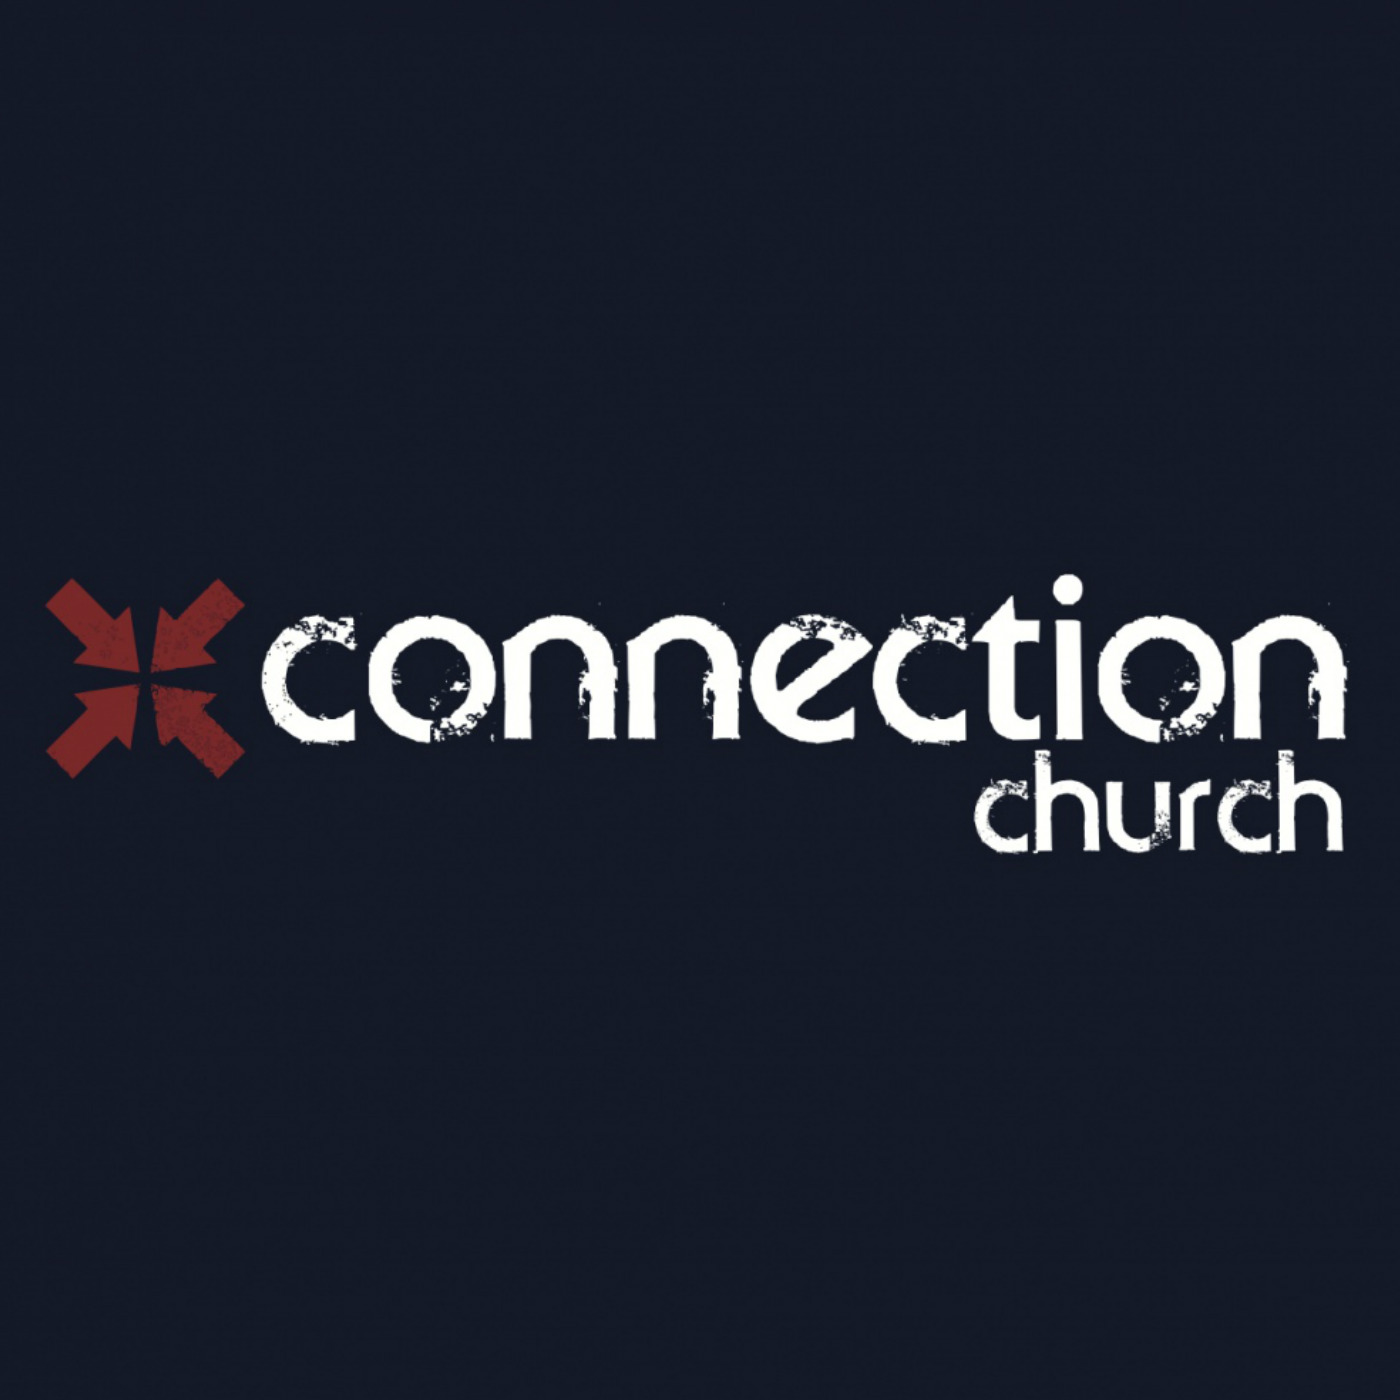 Connection Church Sioux Falls